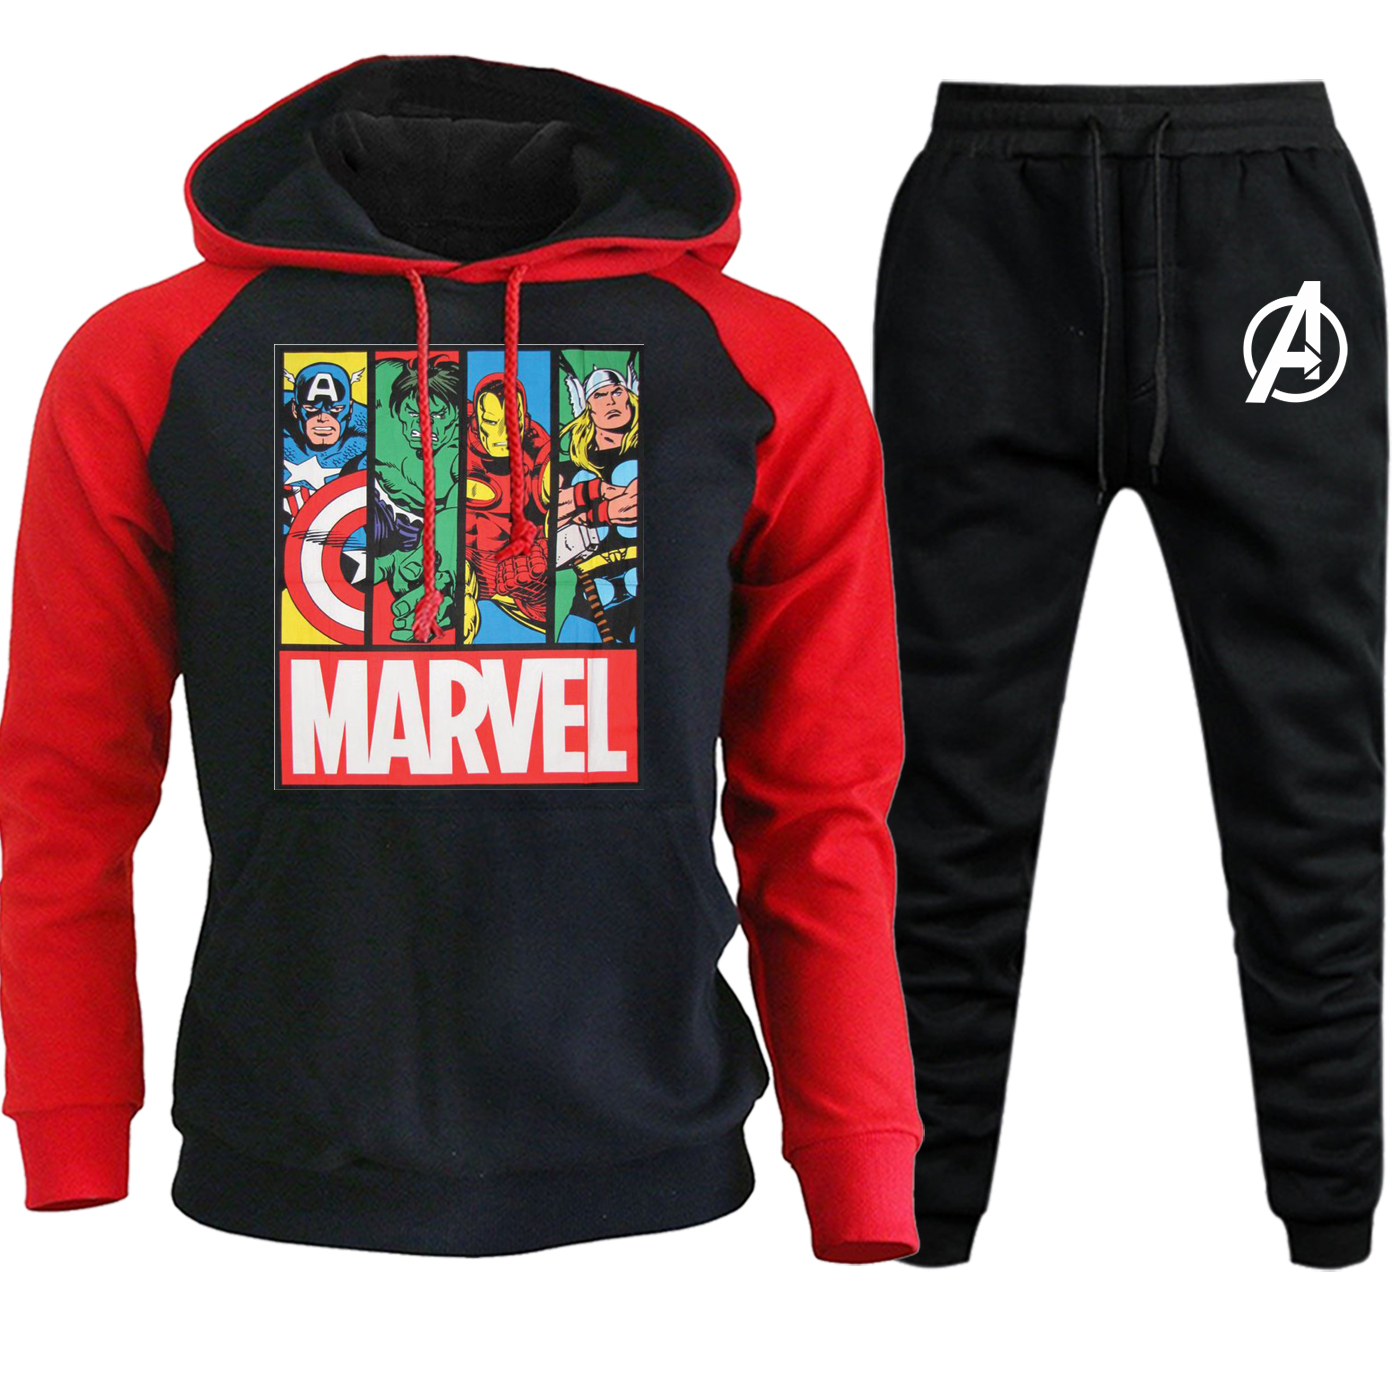 Marvel The Avengers New 2019 Autumn Winter Raglan Mens Hooded Sportswear Fashion Pullover Suit Casual Hoodie+Pants 2 Piece Set